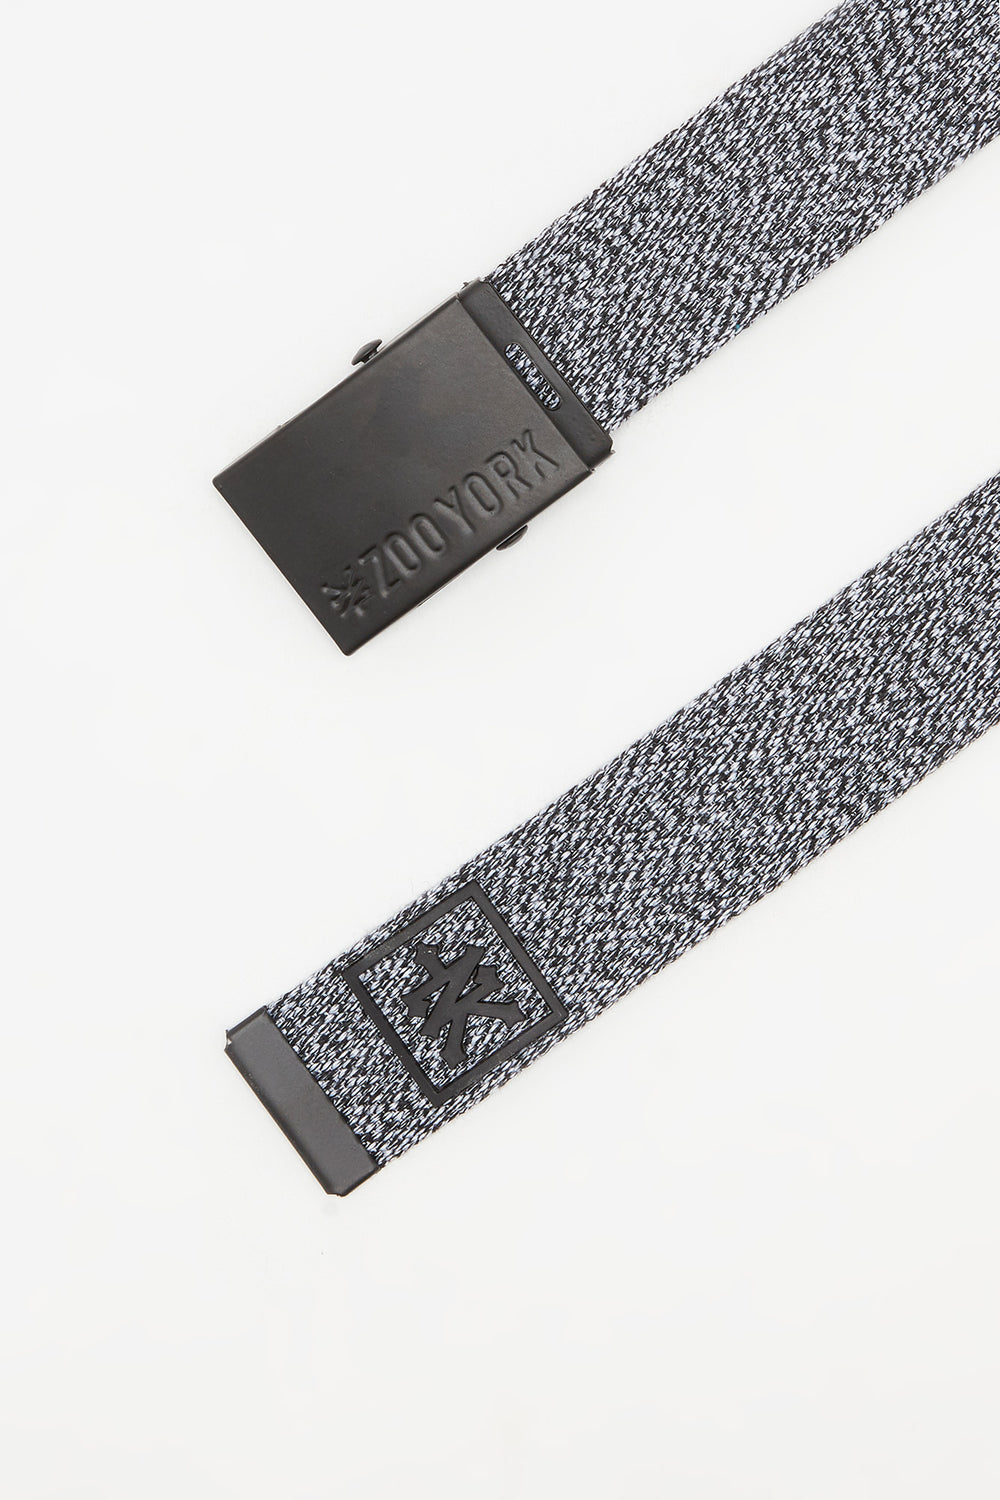 Zoo York Mens Cotton Belt Black with White